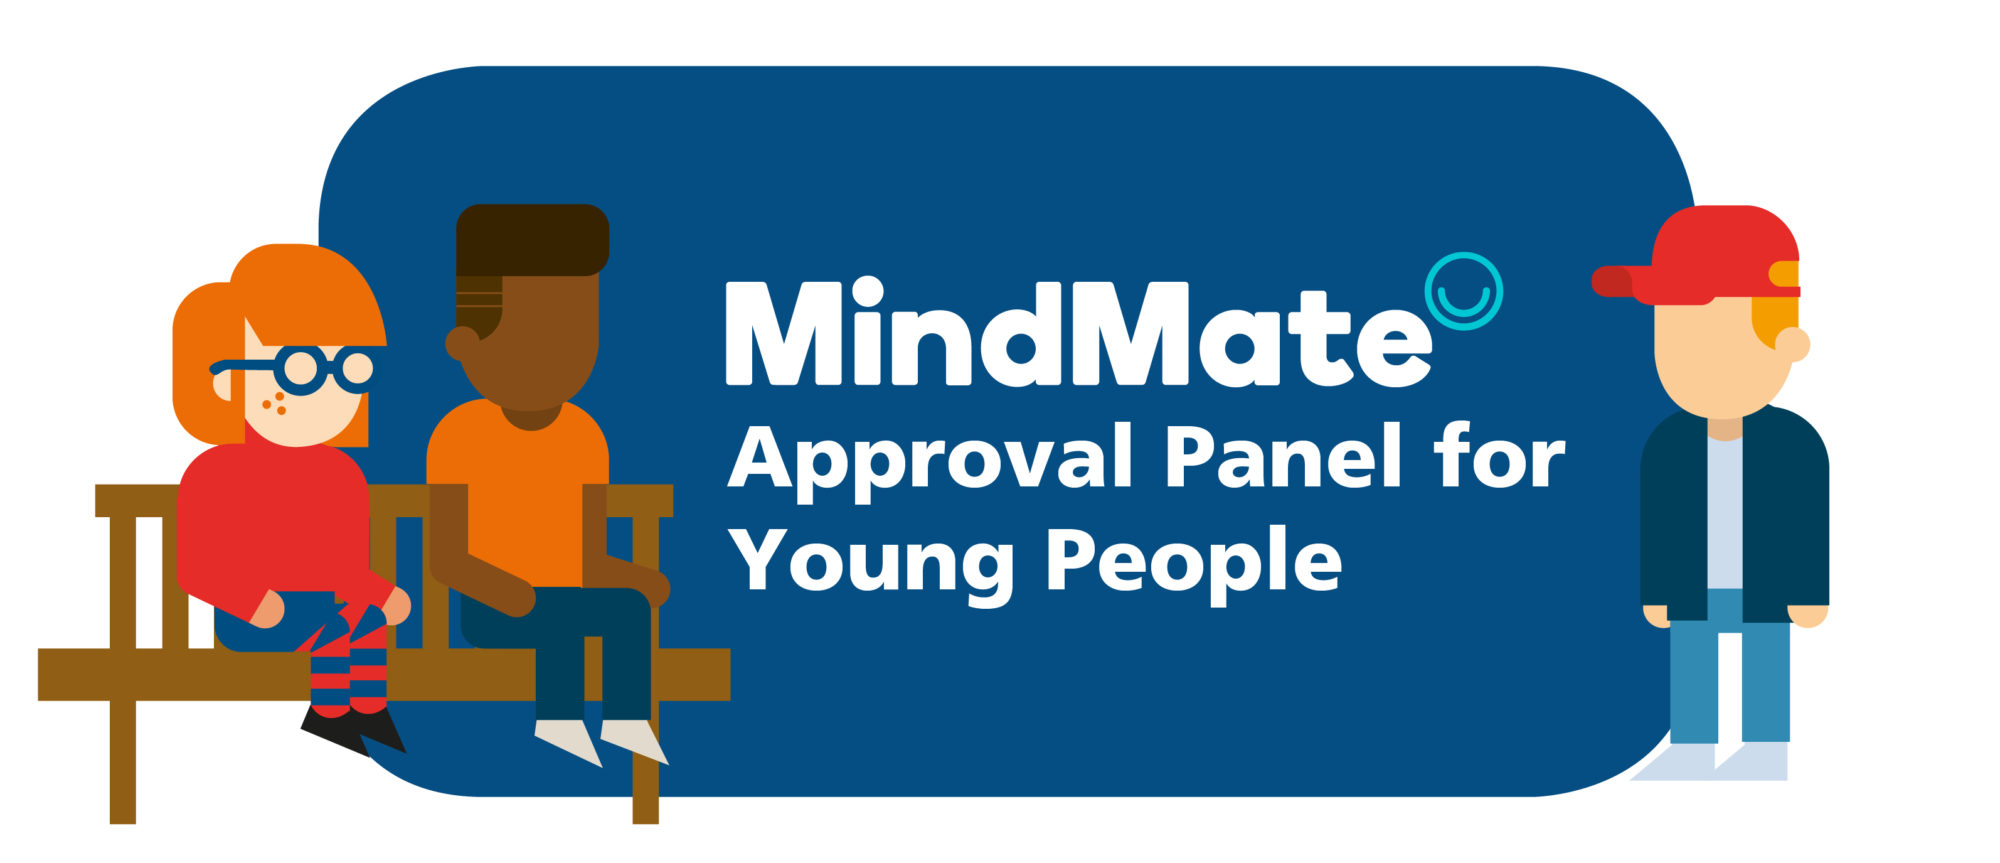 Illustration of young people with the Mindmate logo